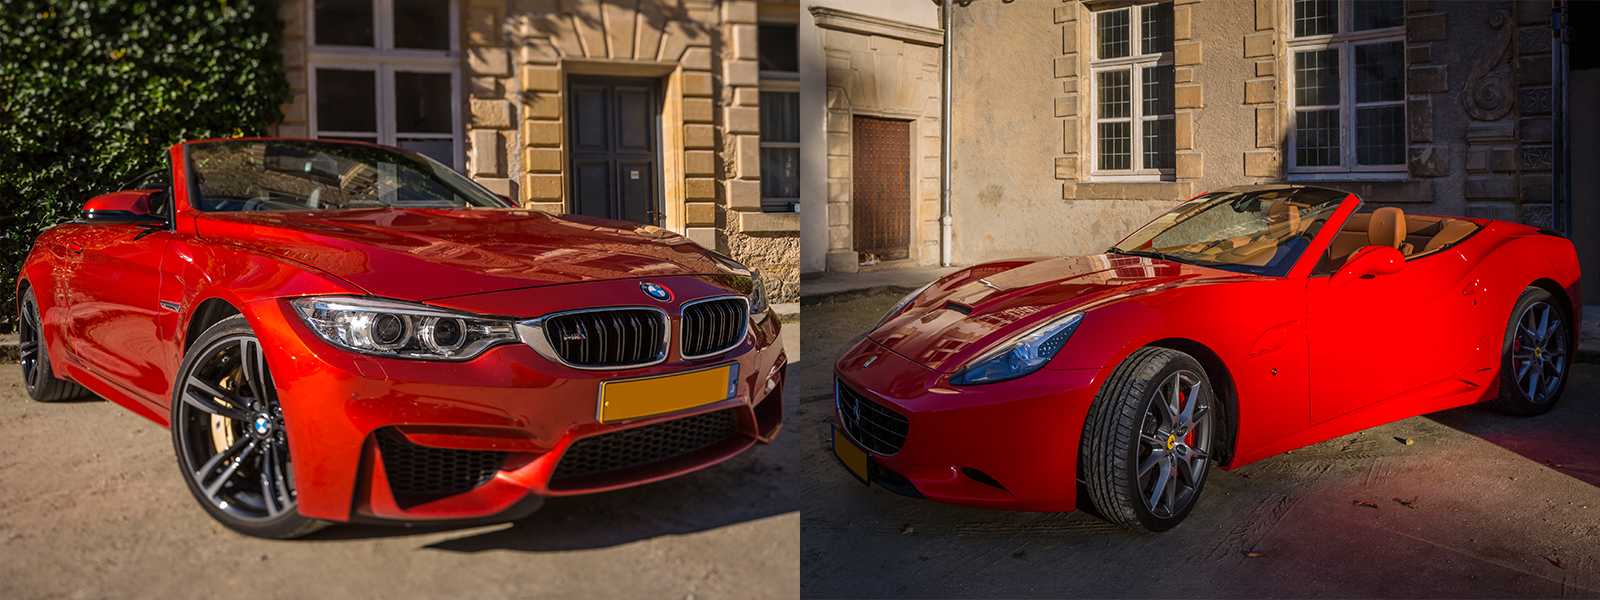 Stage pilotage Ferrari California + BMW M4